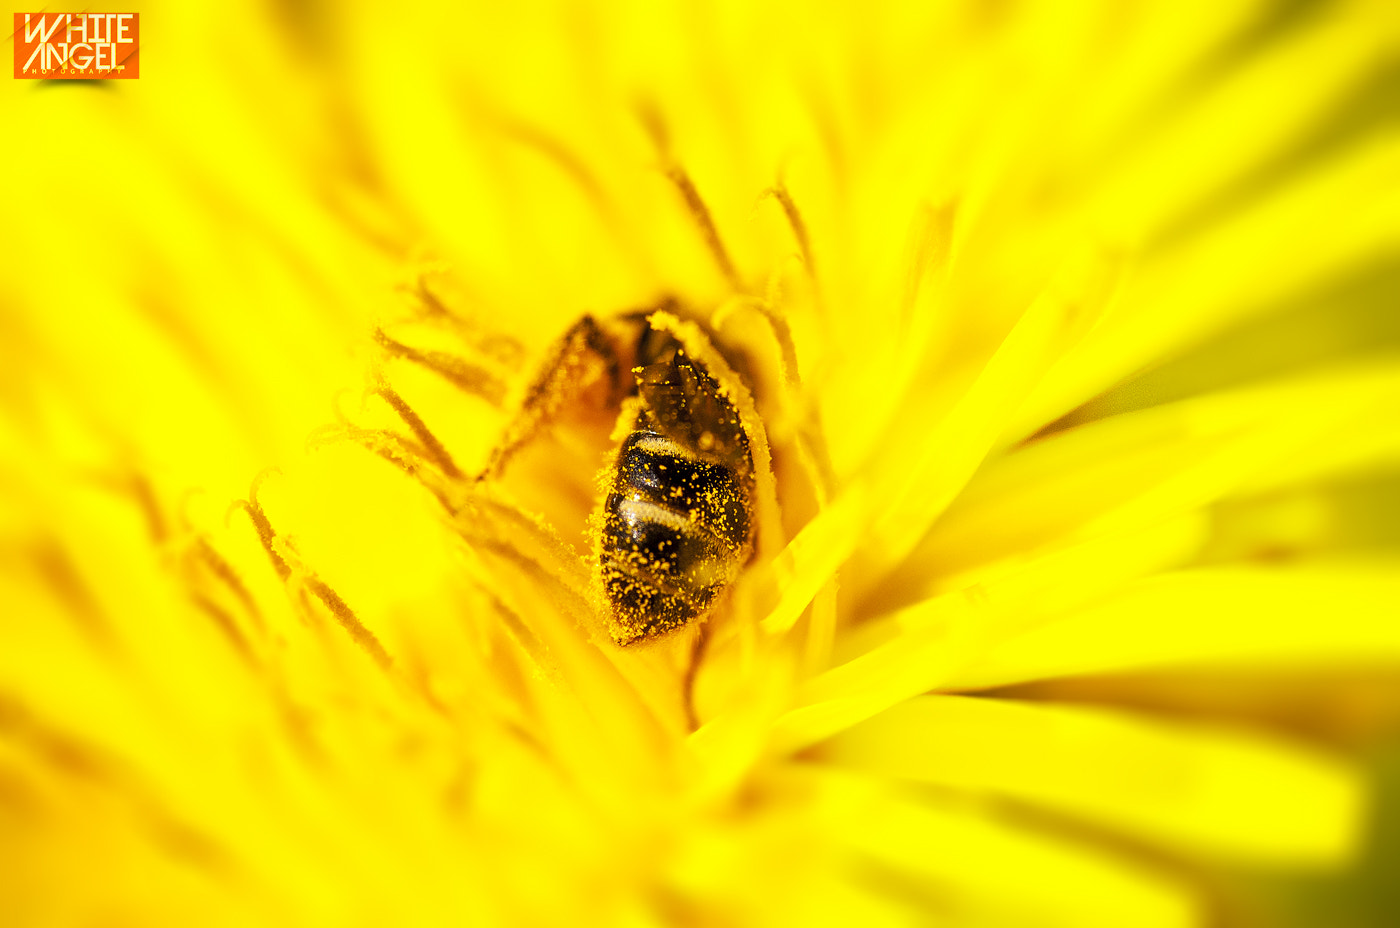 Photograph Bee by WHITE ANGEL PHOTOGRAPHY on 500px